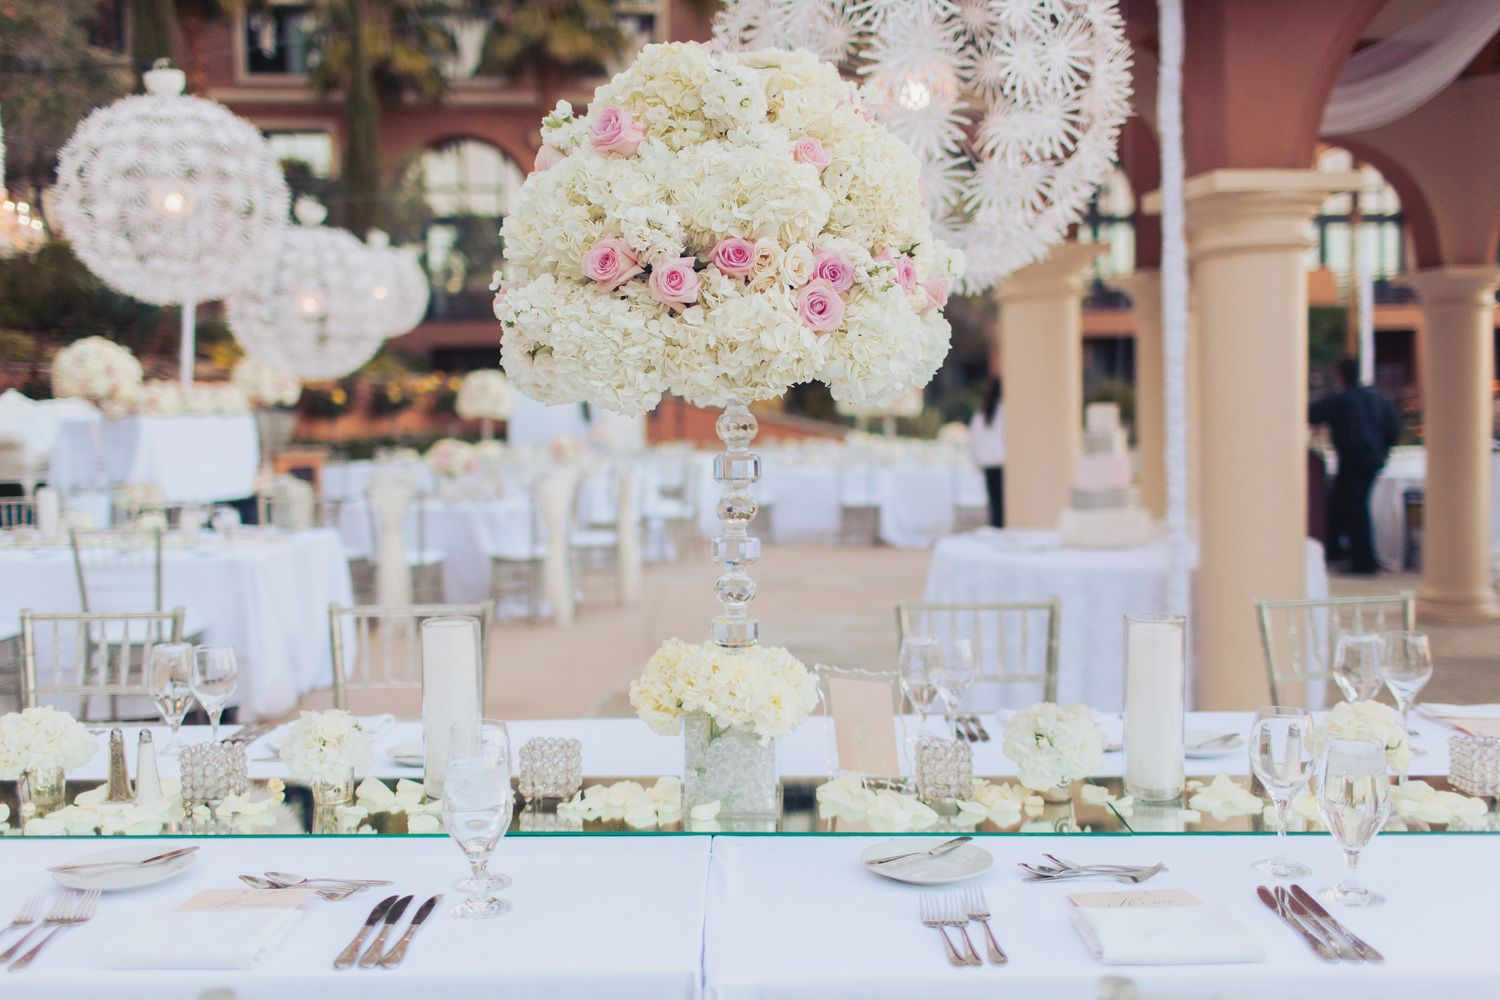 Lux Table Decor and Wedding Centerpieces.  Las Vegas Wedding Planner Andrea Eppolito  |  Wedding at Lake Las Vegas  | White and Blush and Grey Wedding | Luxury Wedding Las Vegas